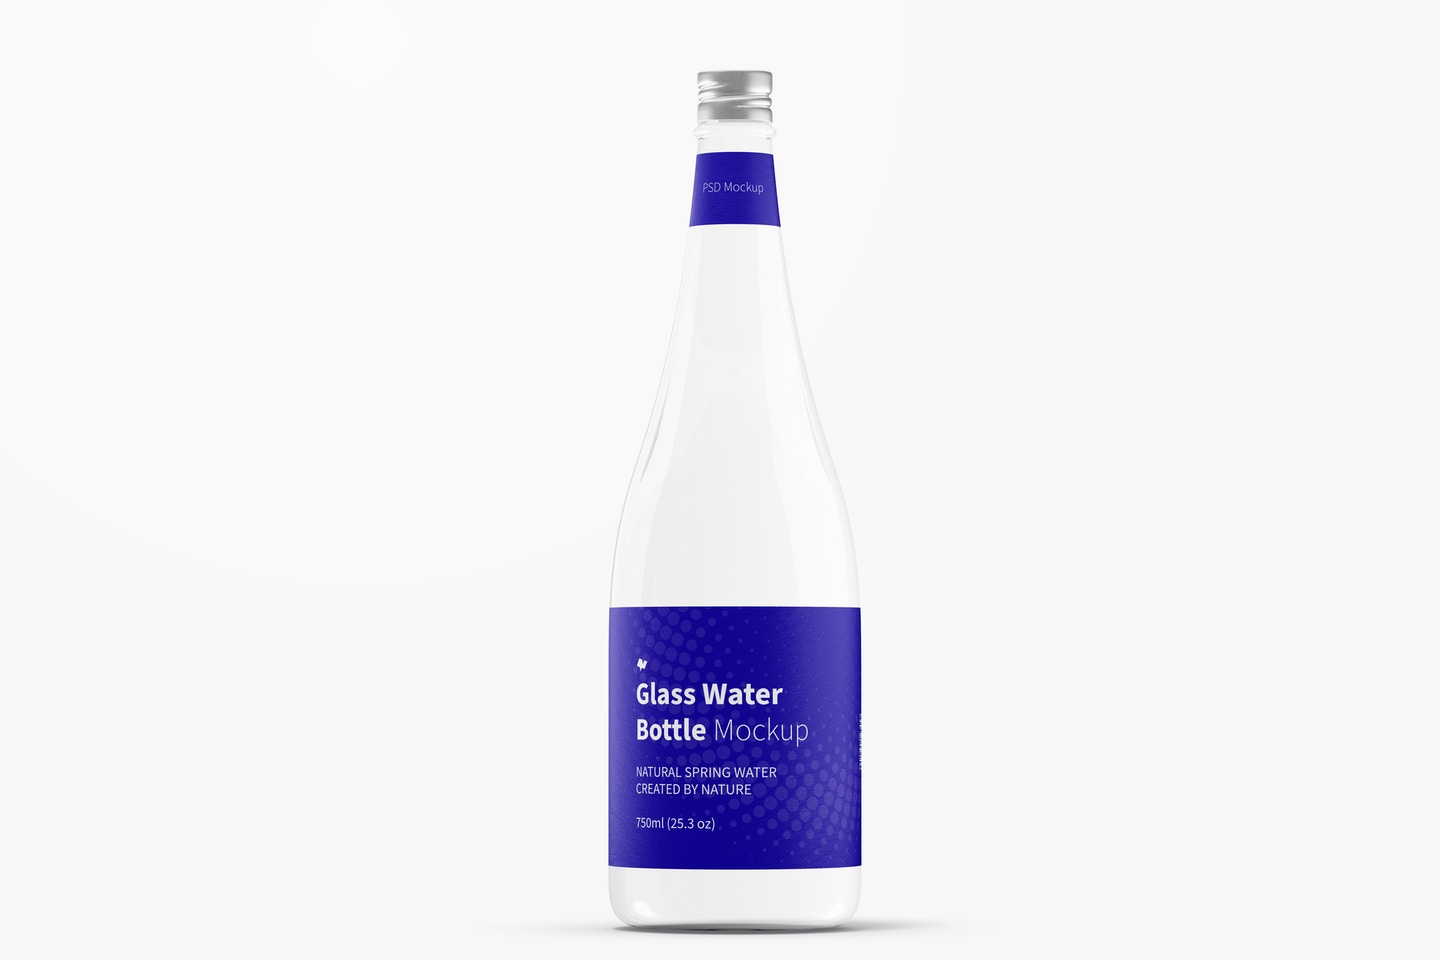 Glass Water Bottle Mockup, Front View